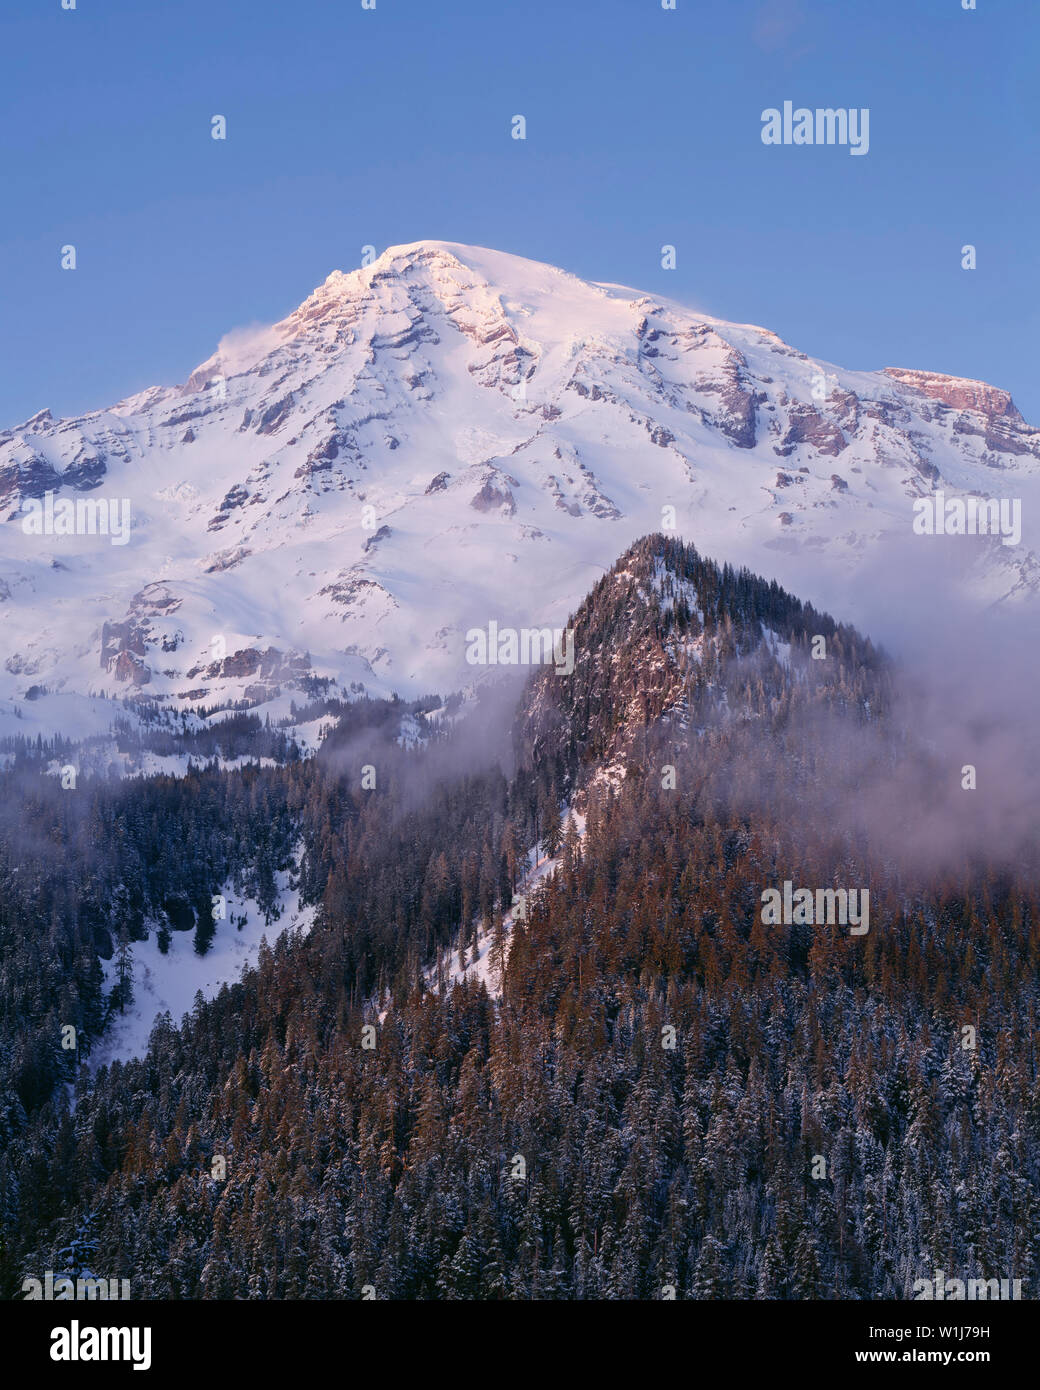 USA, Washington, Mt. Rainier National Park, Soft sunset light on snowy south side of Mt. Rainier in winter with swirling fog on the lower slopes. - Stock Image